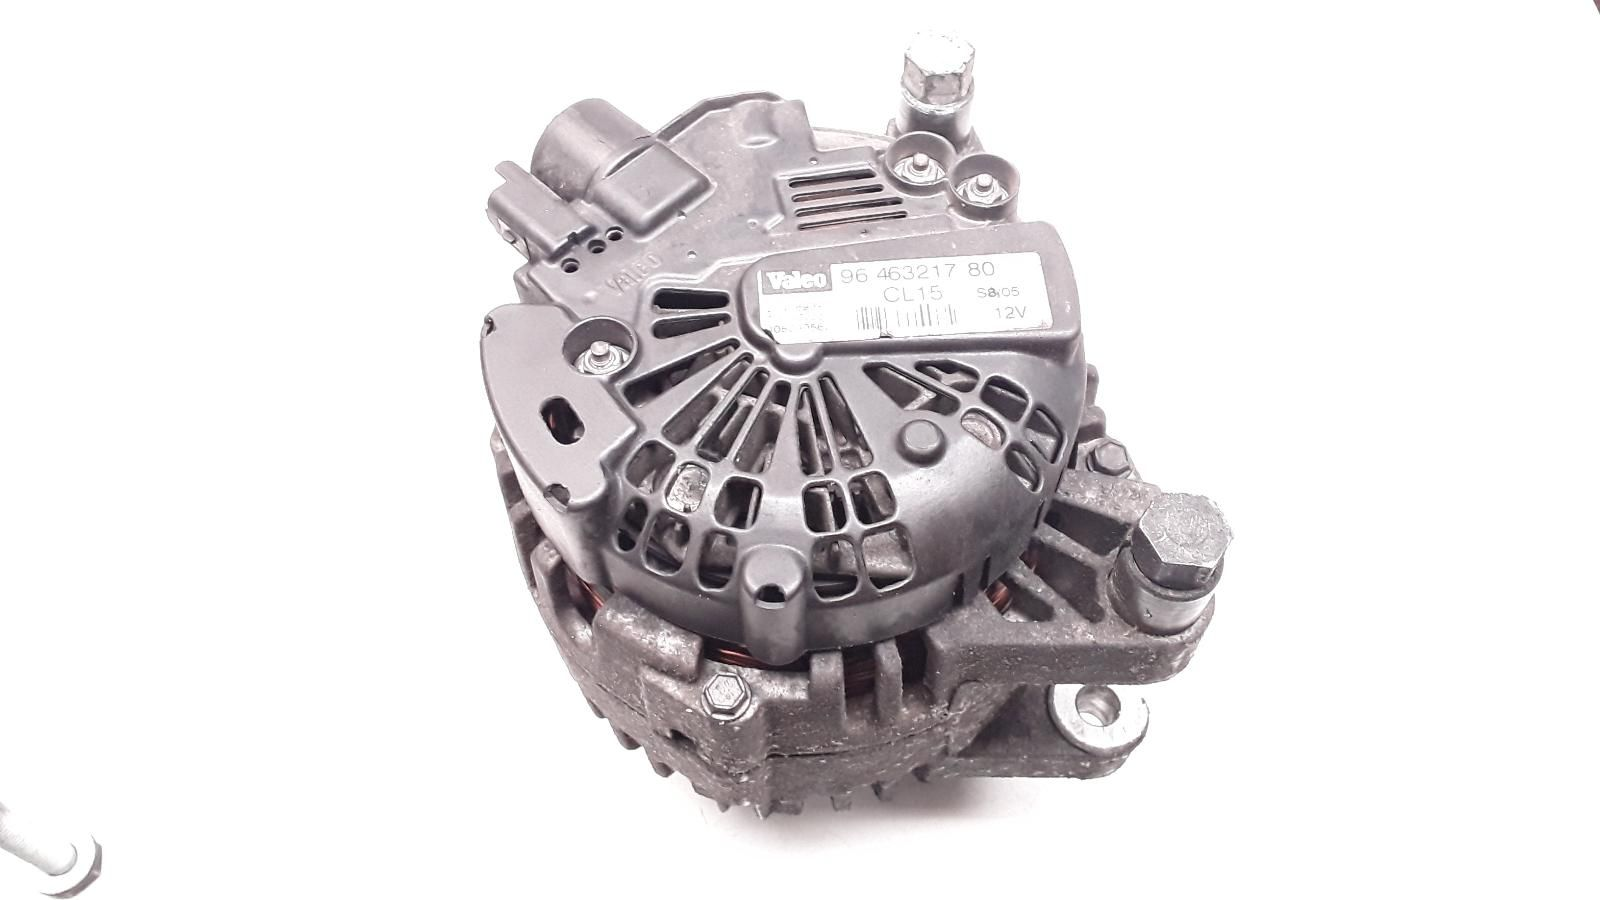 VALEO 9646321780 CL15 5705AS RP 5705NH 1638095180 5705EY